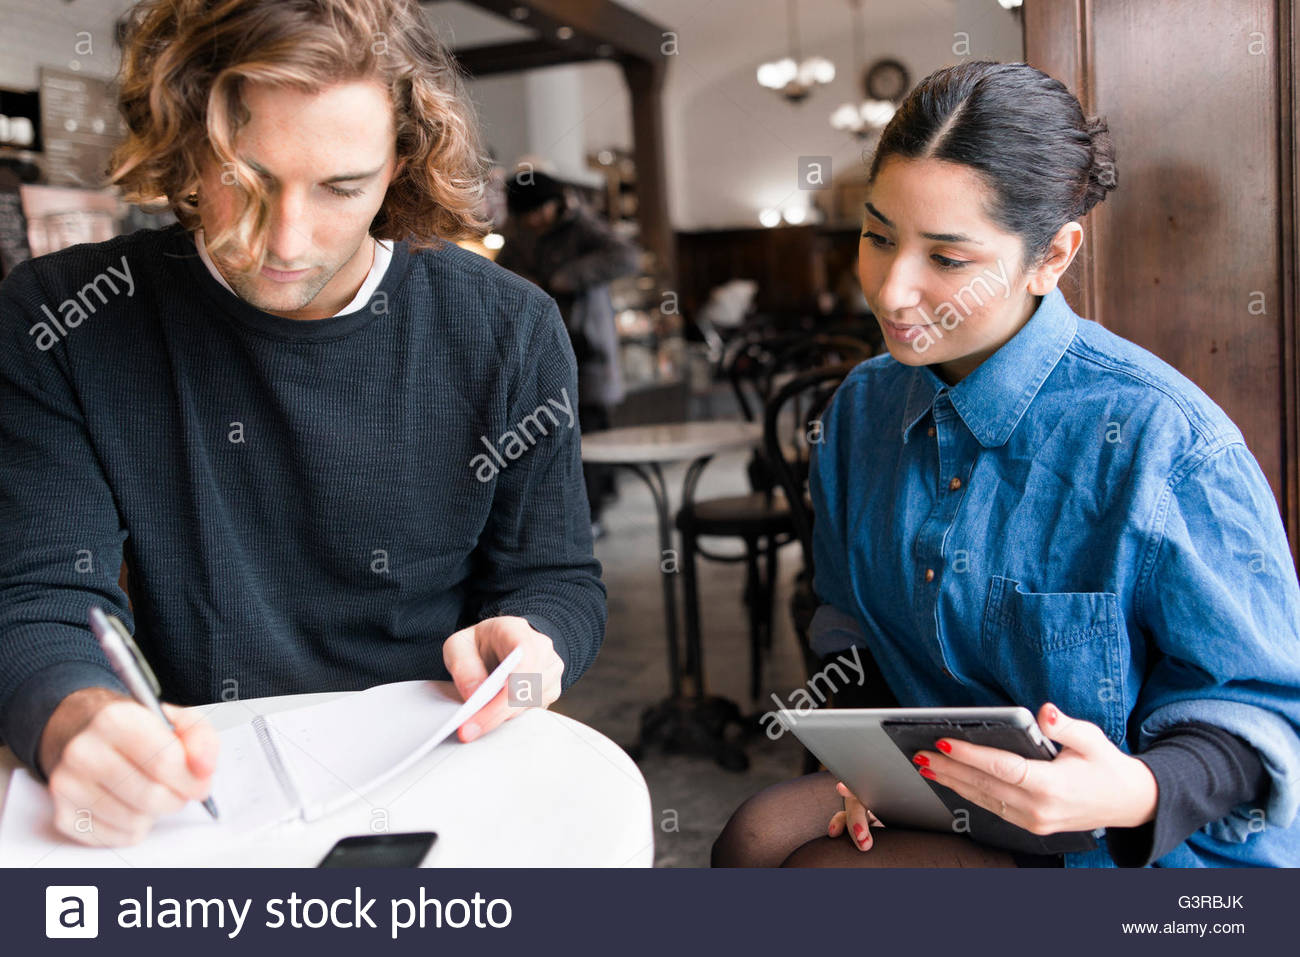 Sweden, Young people working in cafe - Stock Image